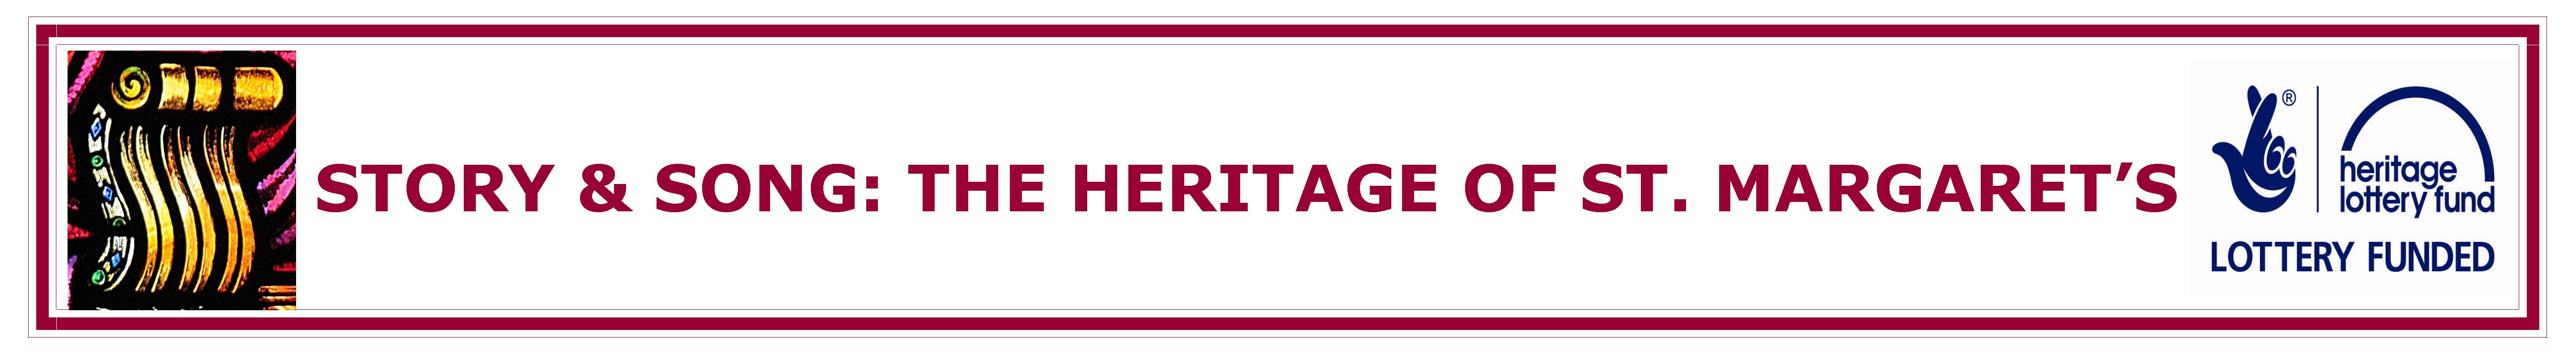 heritage lottery banner V2 lowres for mailing